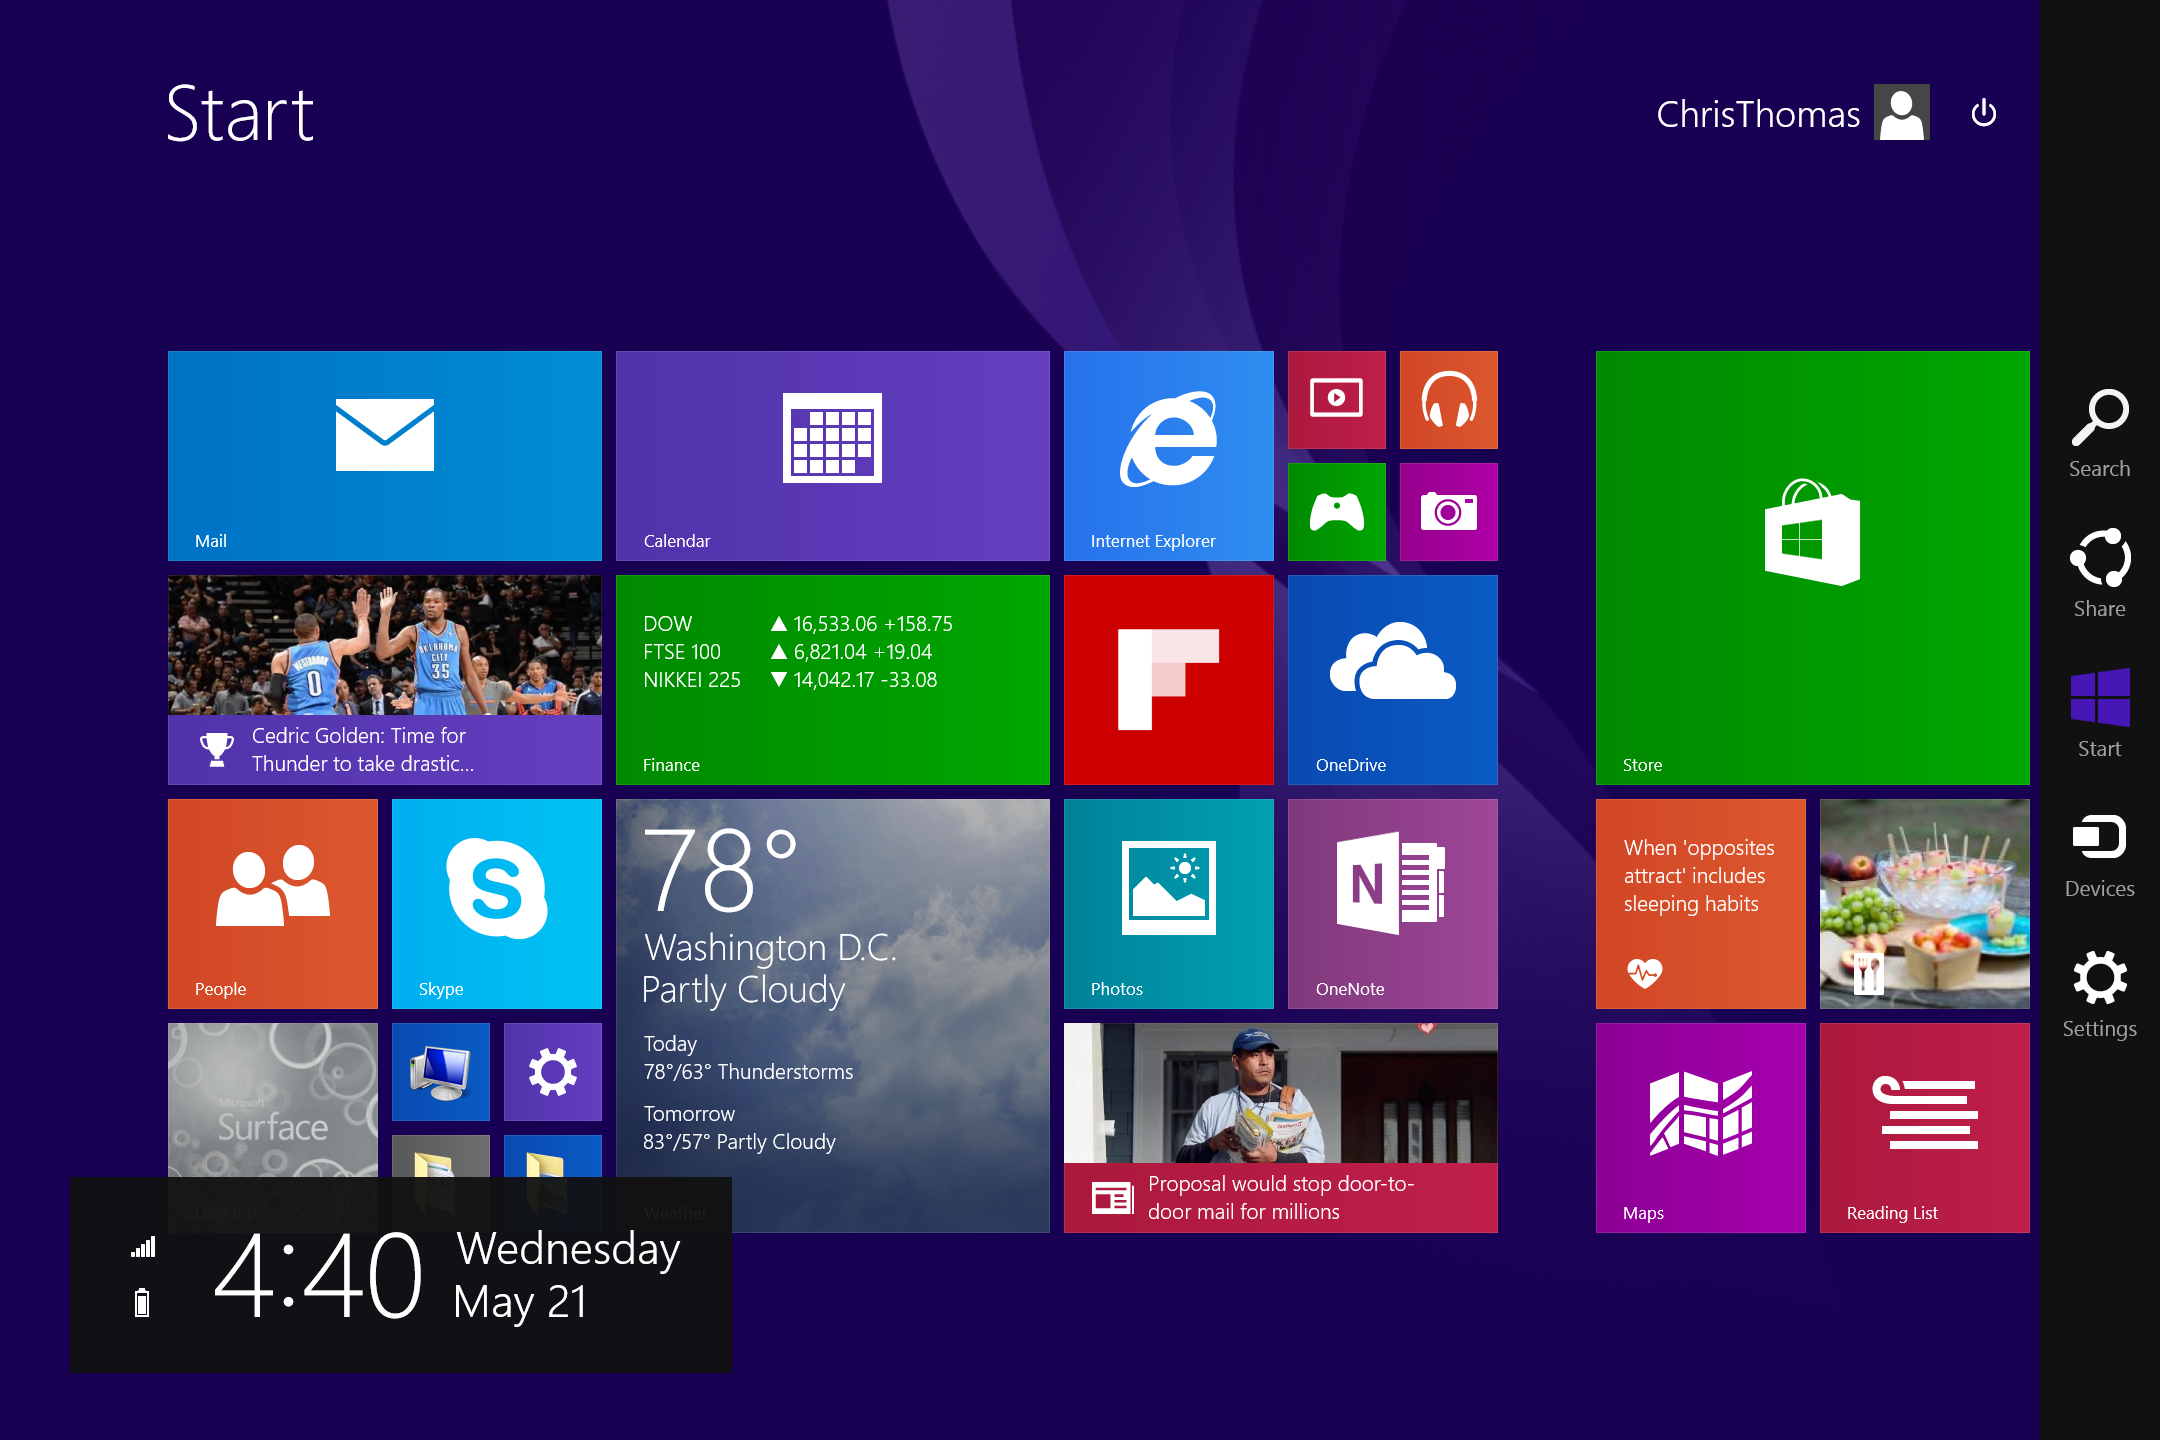 A screenshot of the Microsoft Surface 3's start screen.